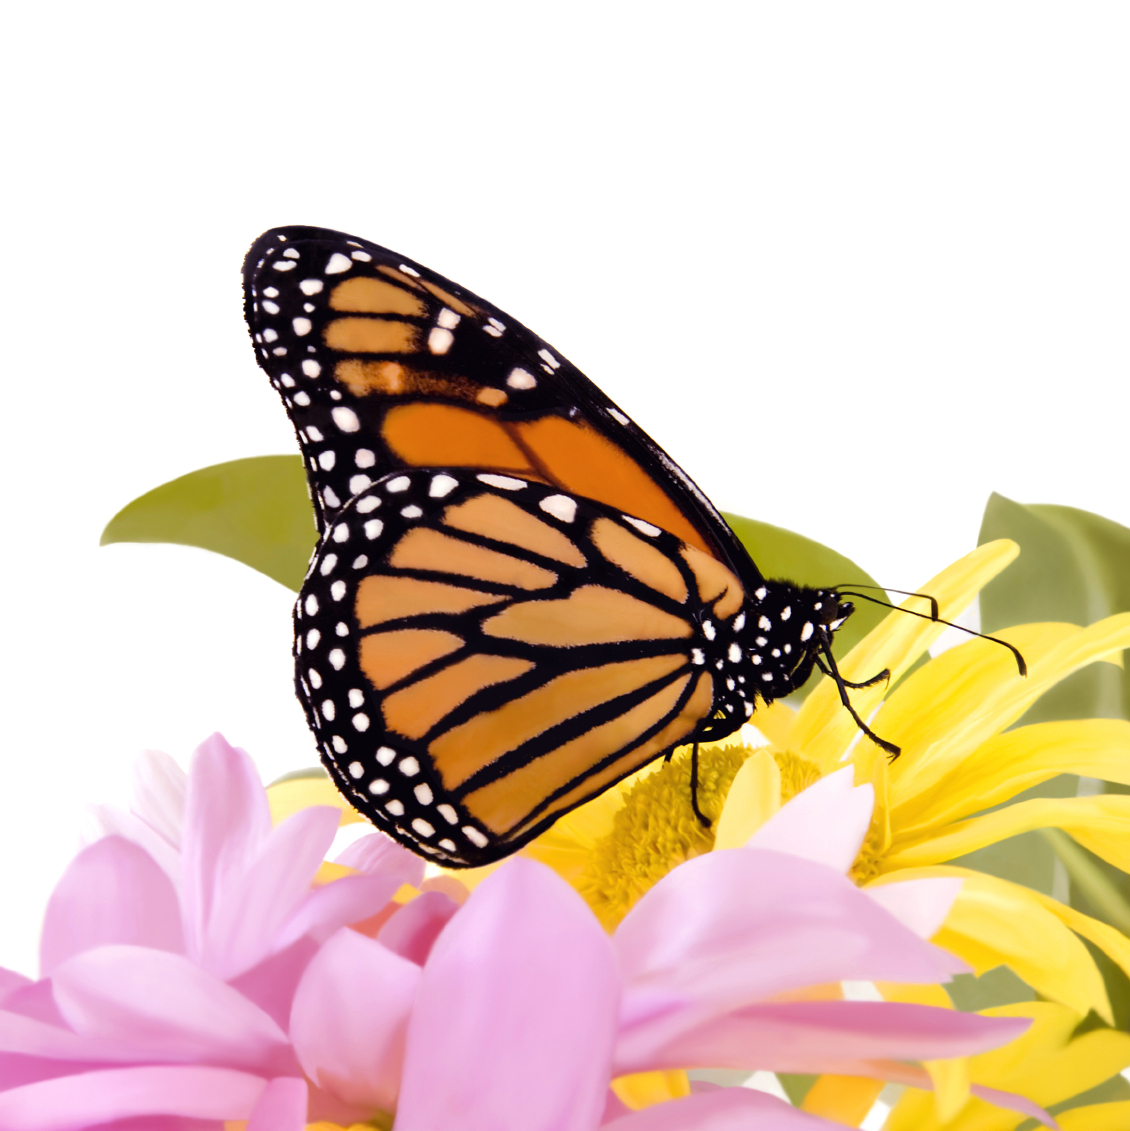 Live Monarch Butterflies by the Dozen